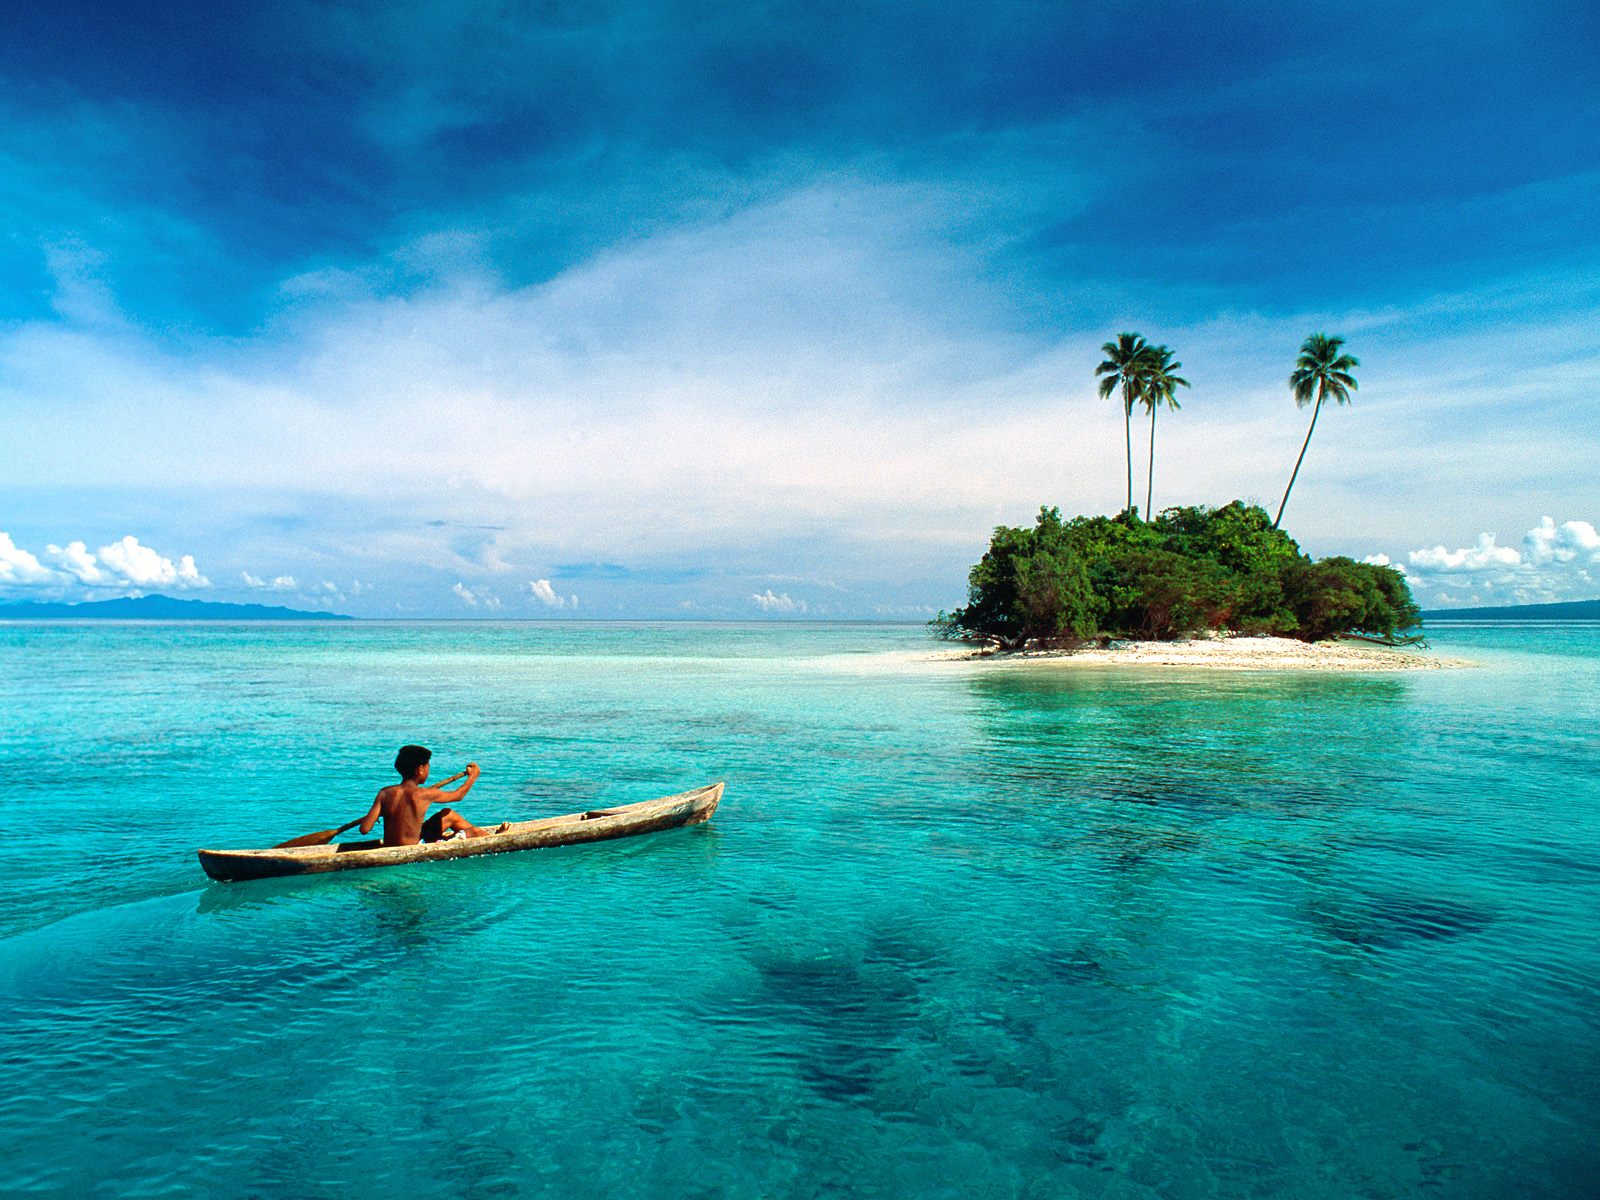 Solomon Islands, South Pacific